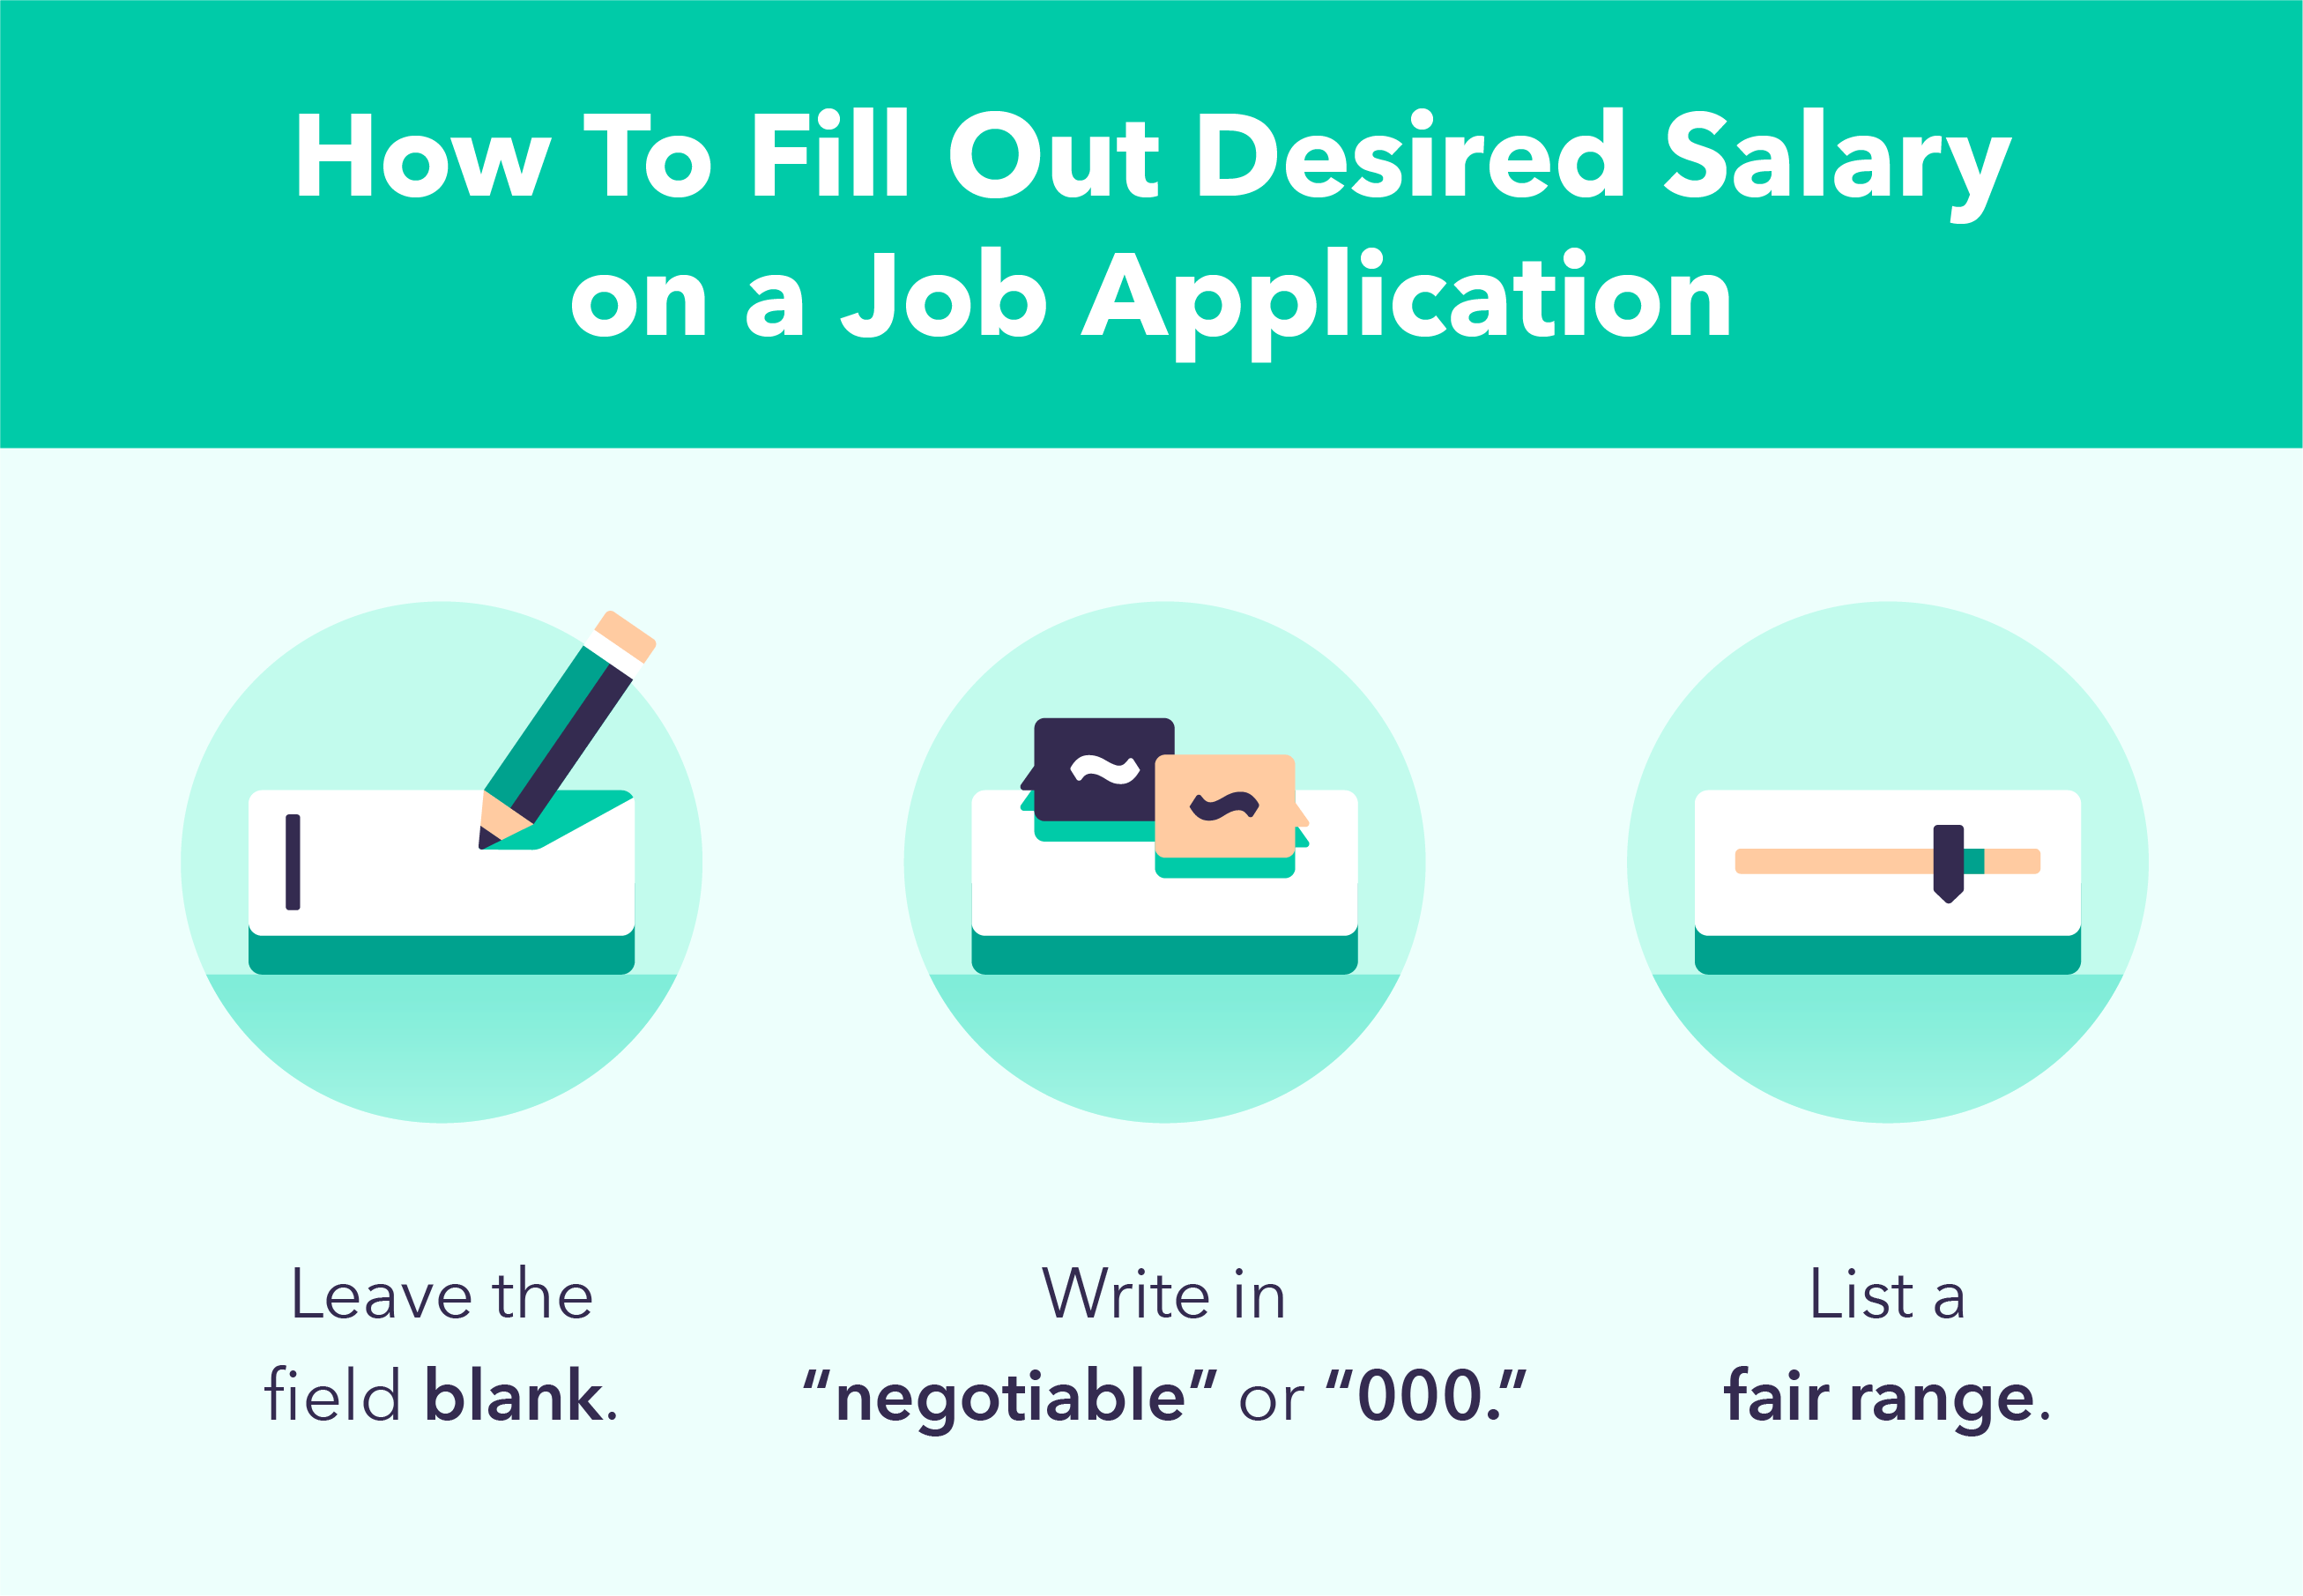 how-to-fill-out-desired-salary-on-a-job-application